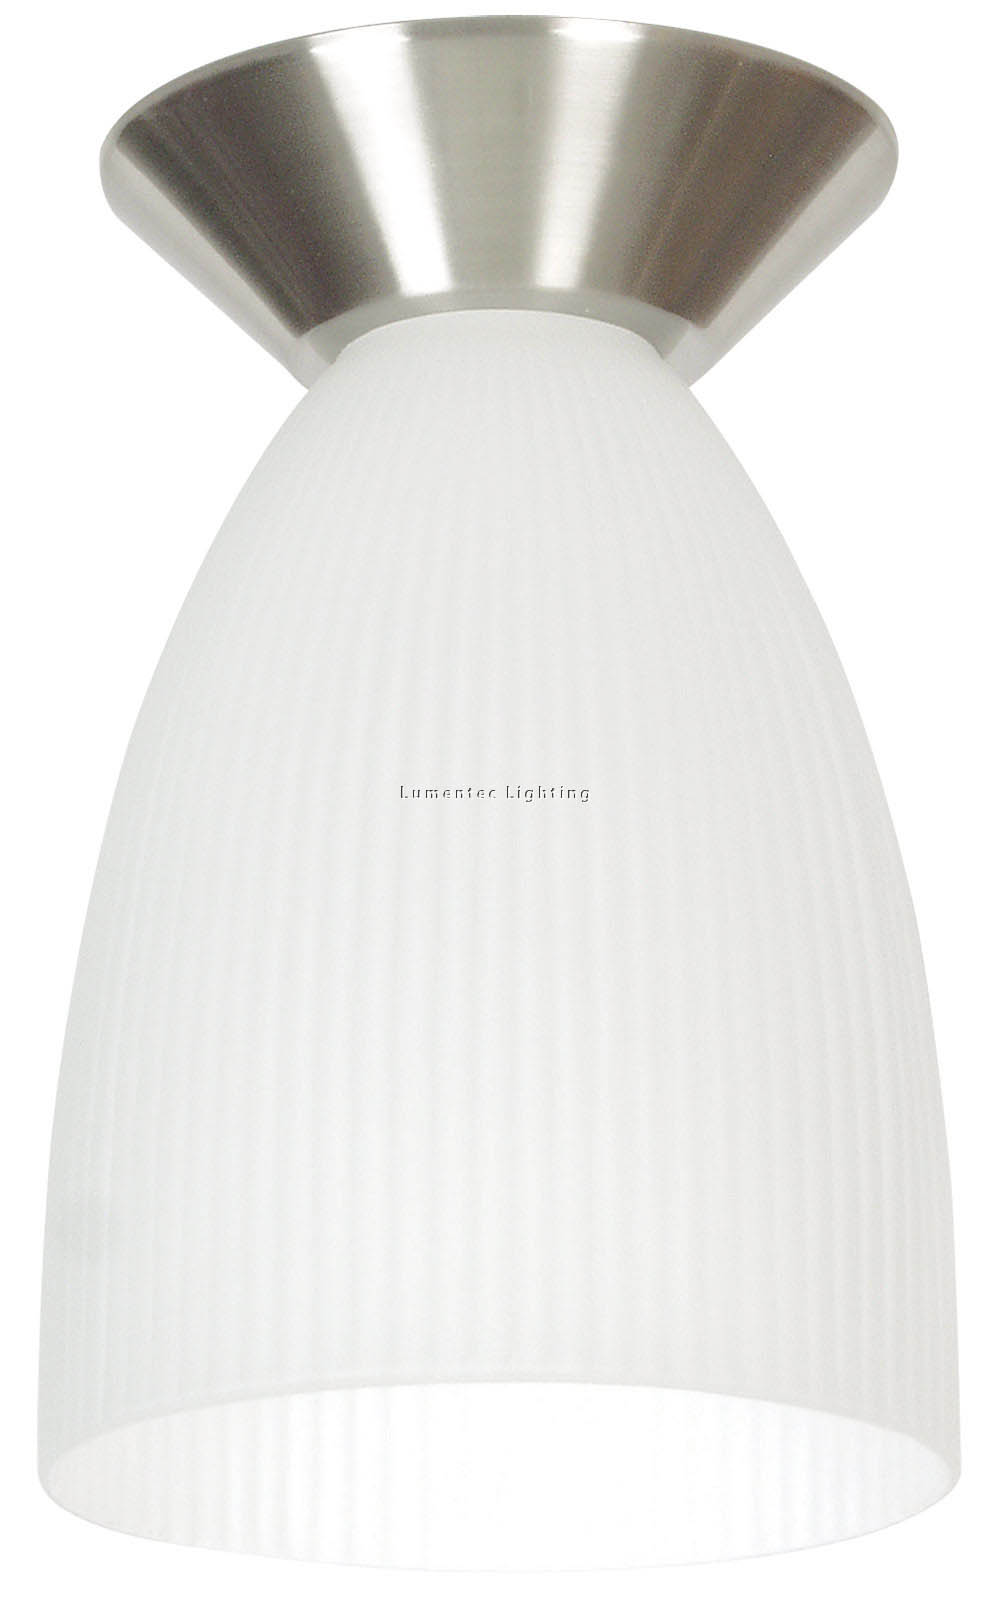 ORL0154 Holophane Opal Batten Fix Flush Mount in Matt / Brushed Chrome Oriel